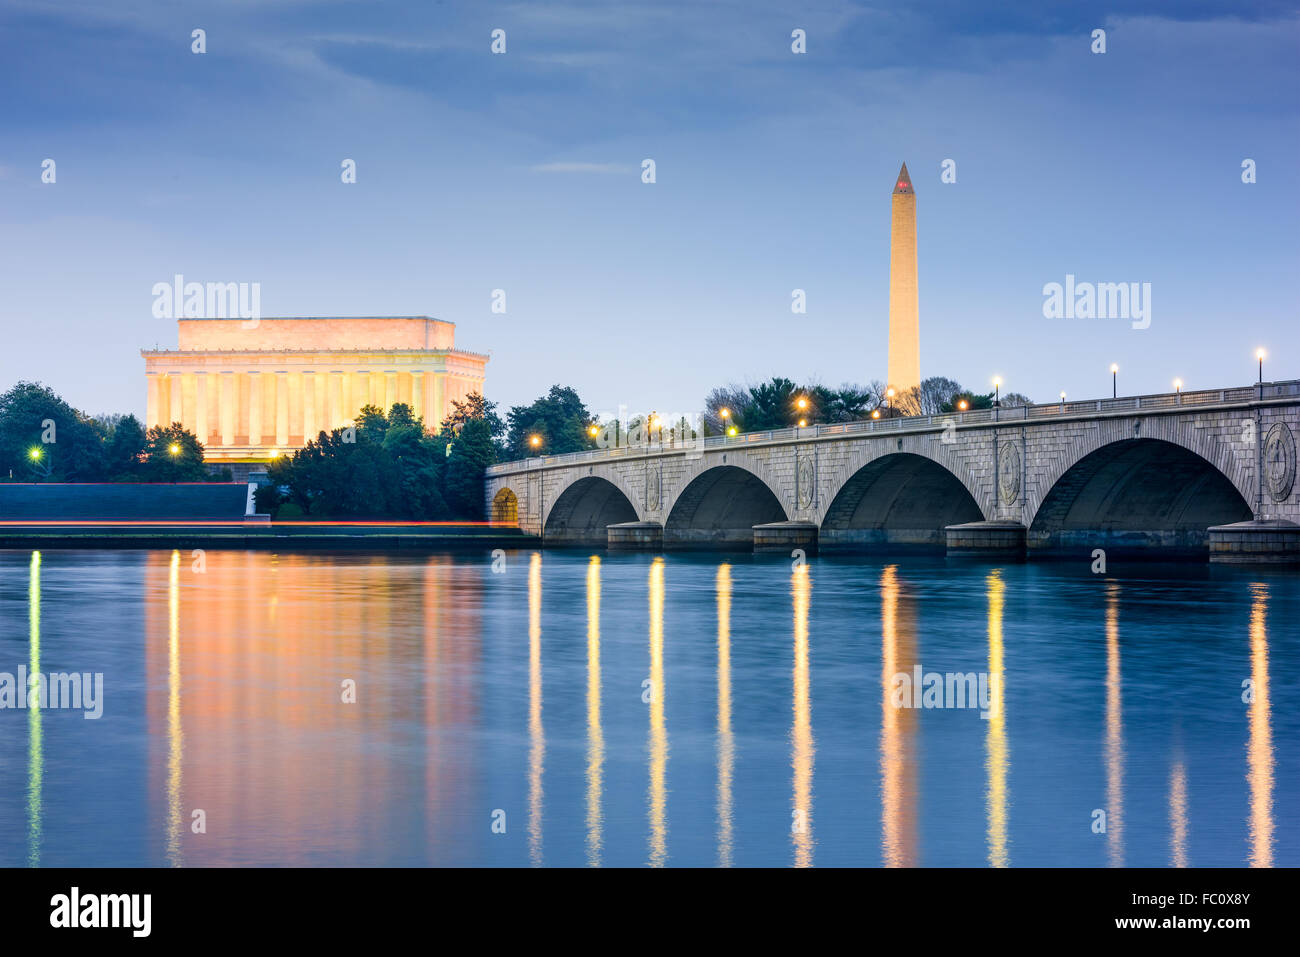 Washington DC, USA skyline on the Potomac River with Lincoln Memorial, Washington Monument, and Arlington Memorial - Stock Image